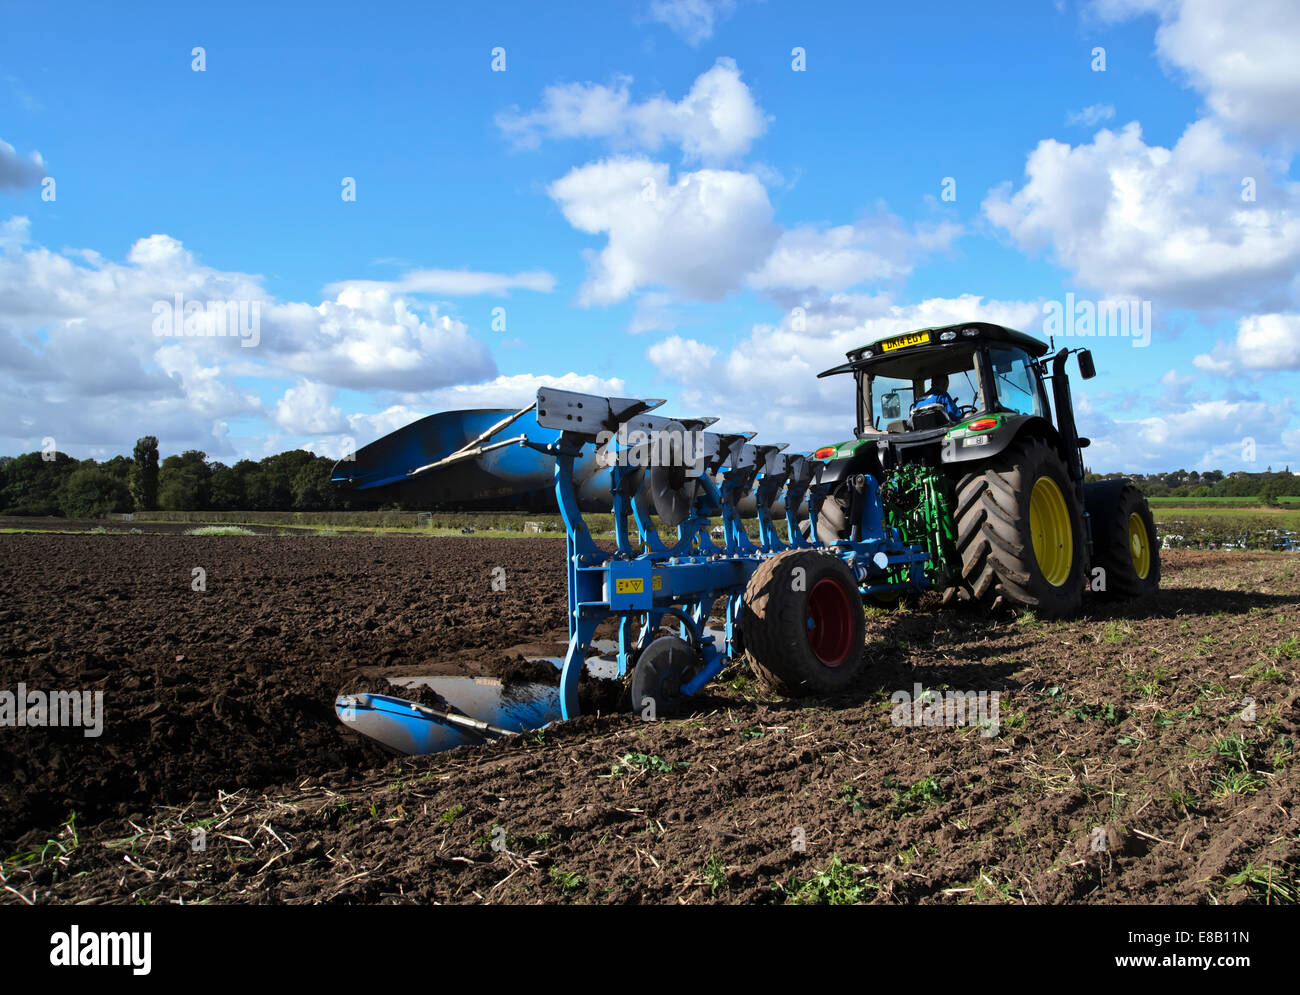 big 'jonh deeere' tractor ploughing plowing with wheeled six furrow reversible plough plow - Stock Image